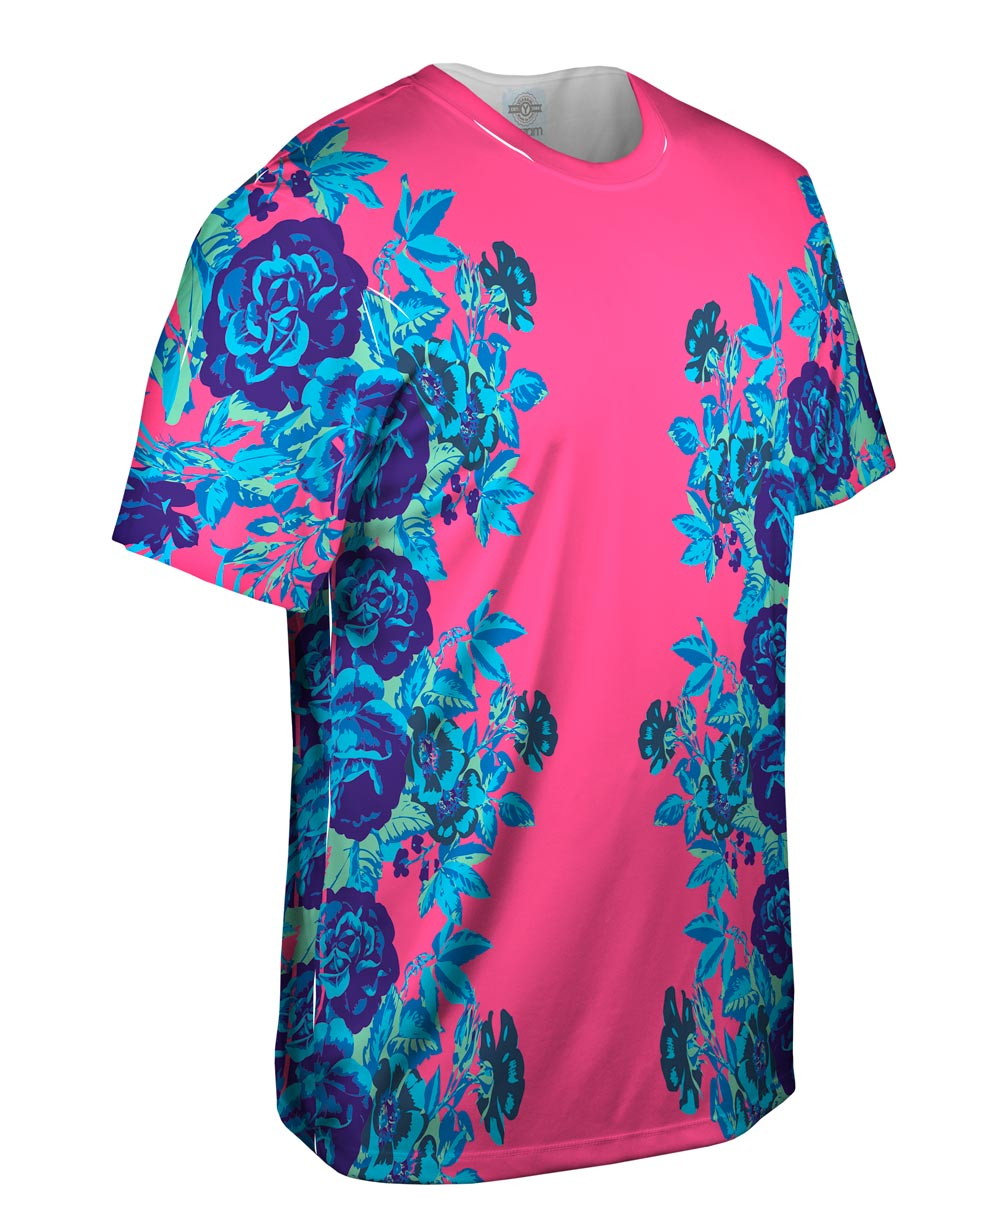 Yizzam floral print pink new men unisex tee shirt xs s for Floral mens t shirts